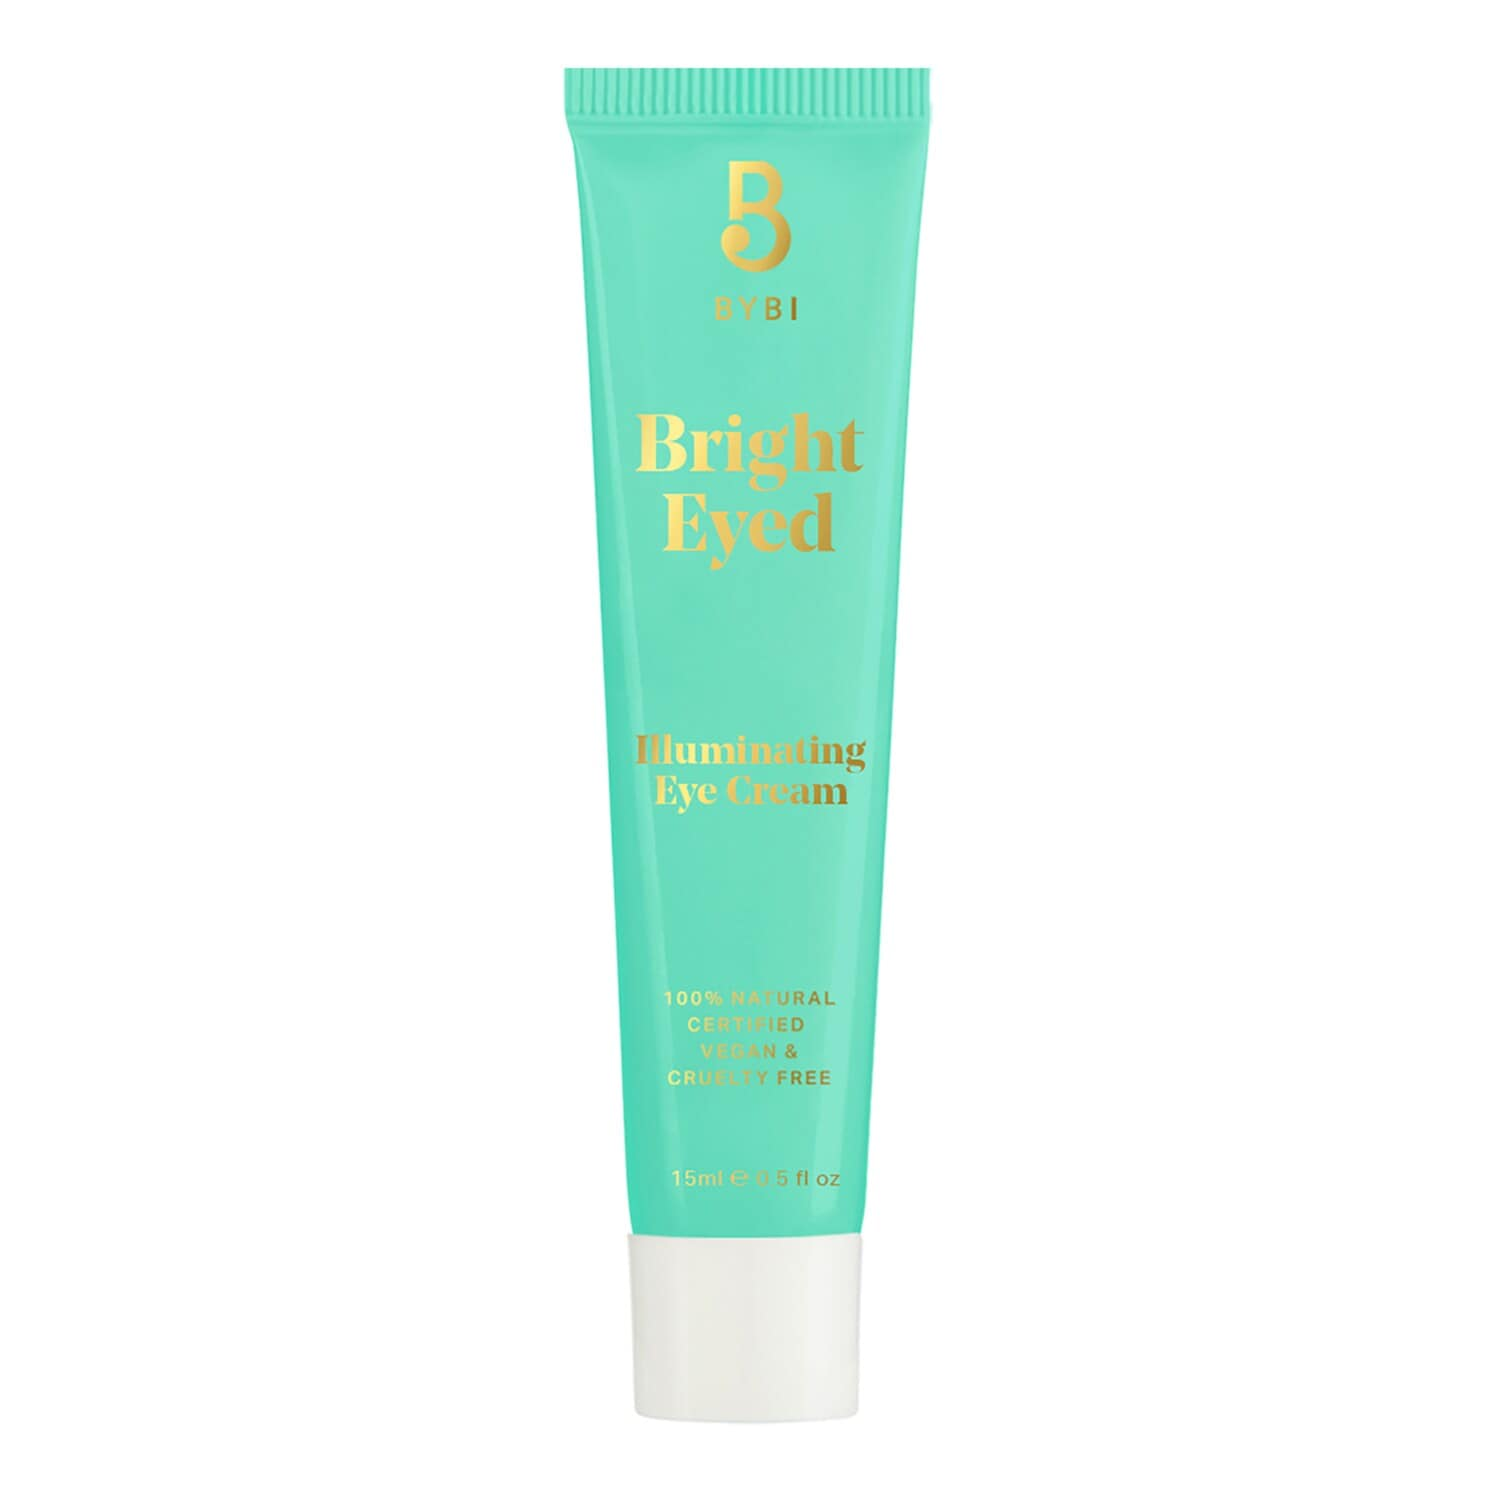 Bright Eyed - Illuminating Eye Cream